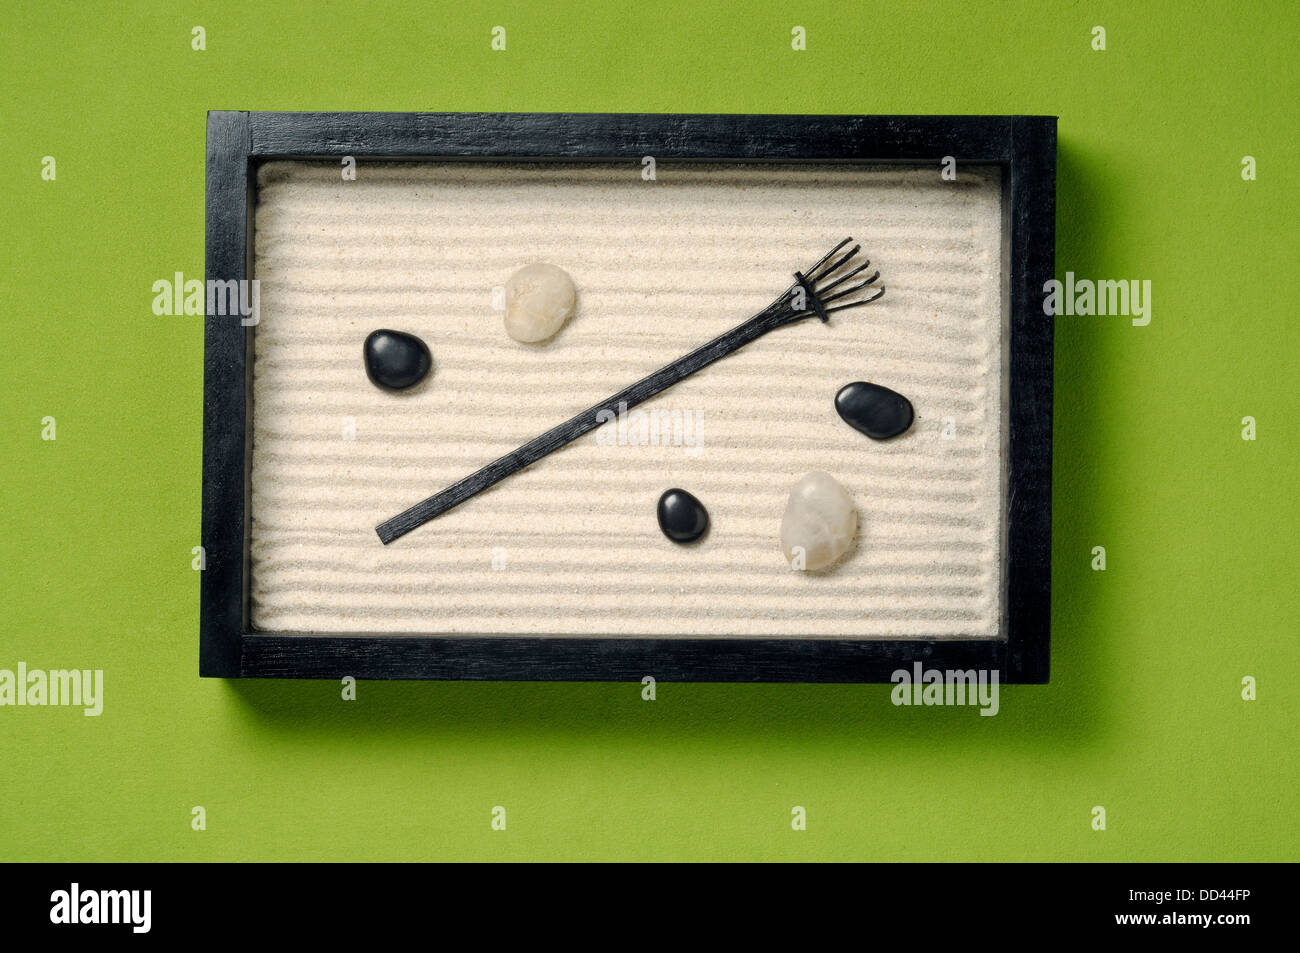 A small rectangular sand zen garden with rocks and a small rake. - Stock Image